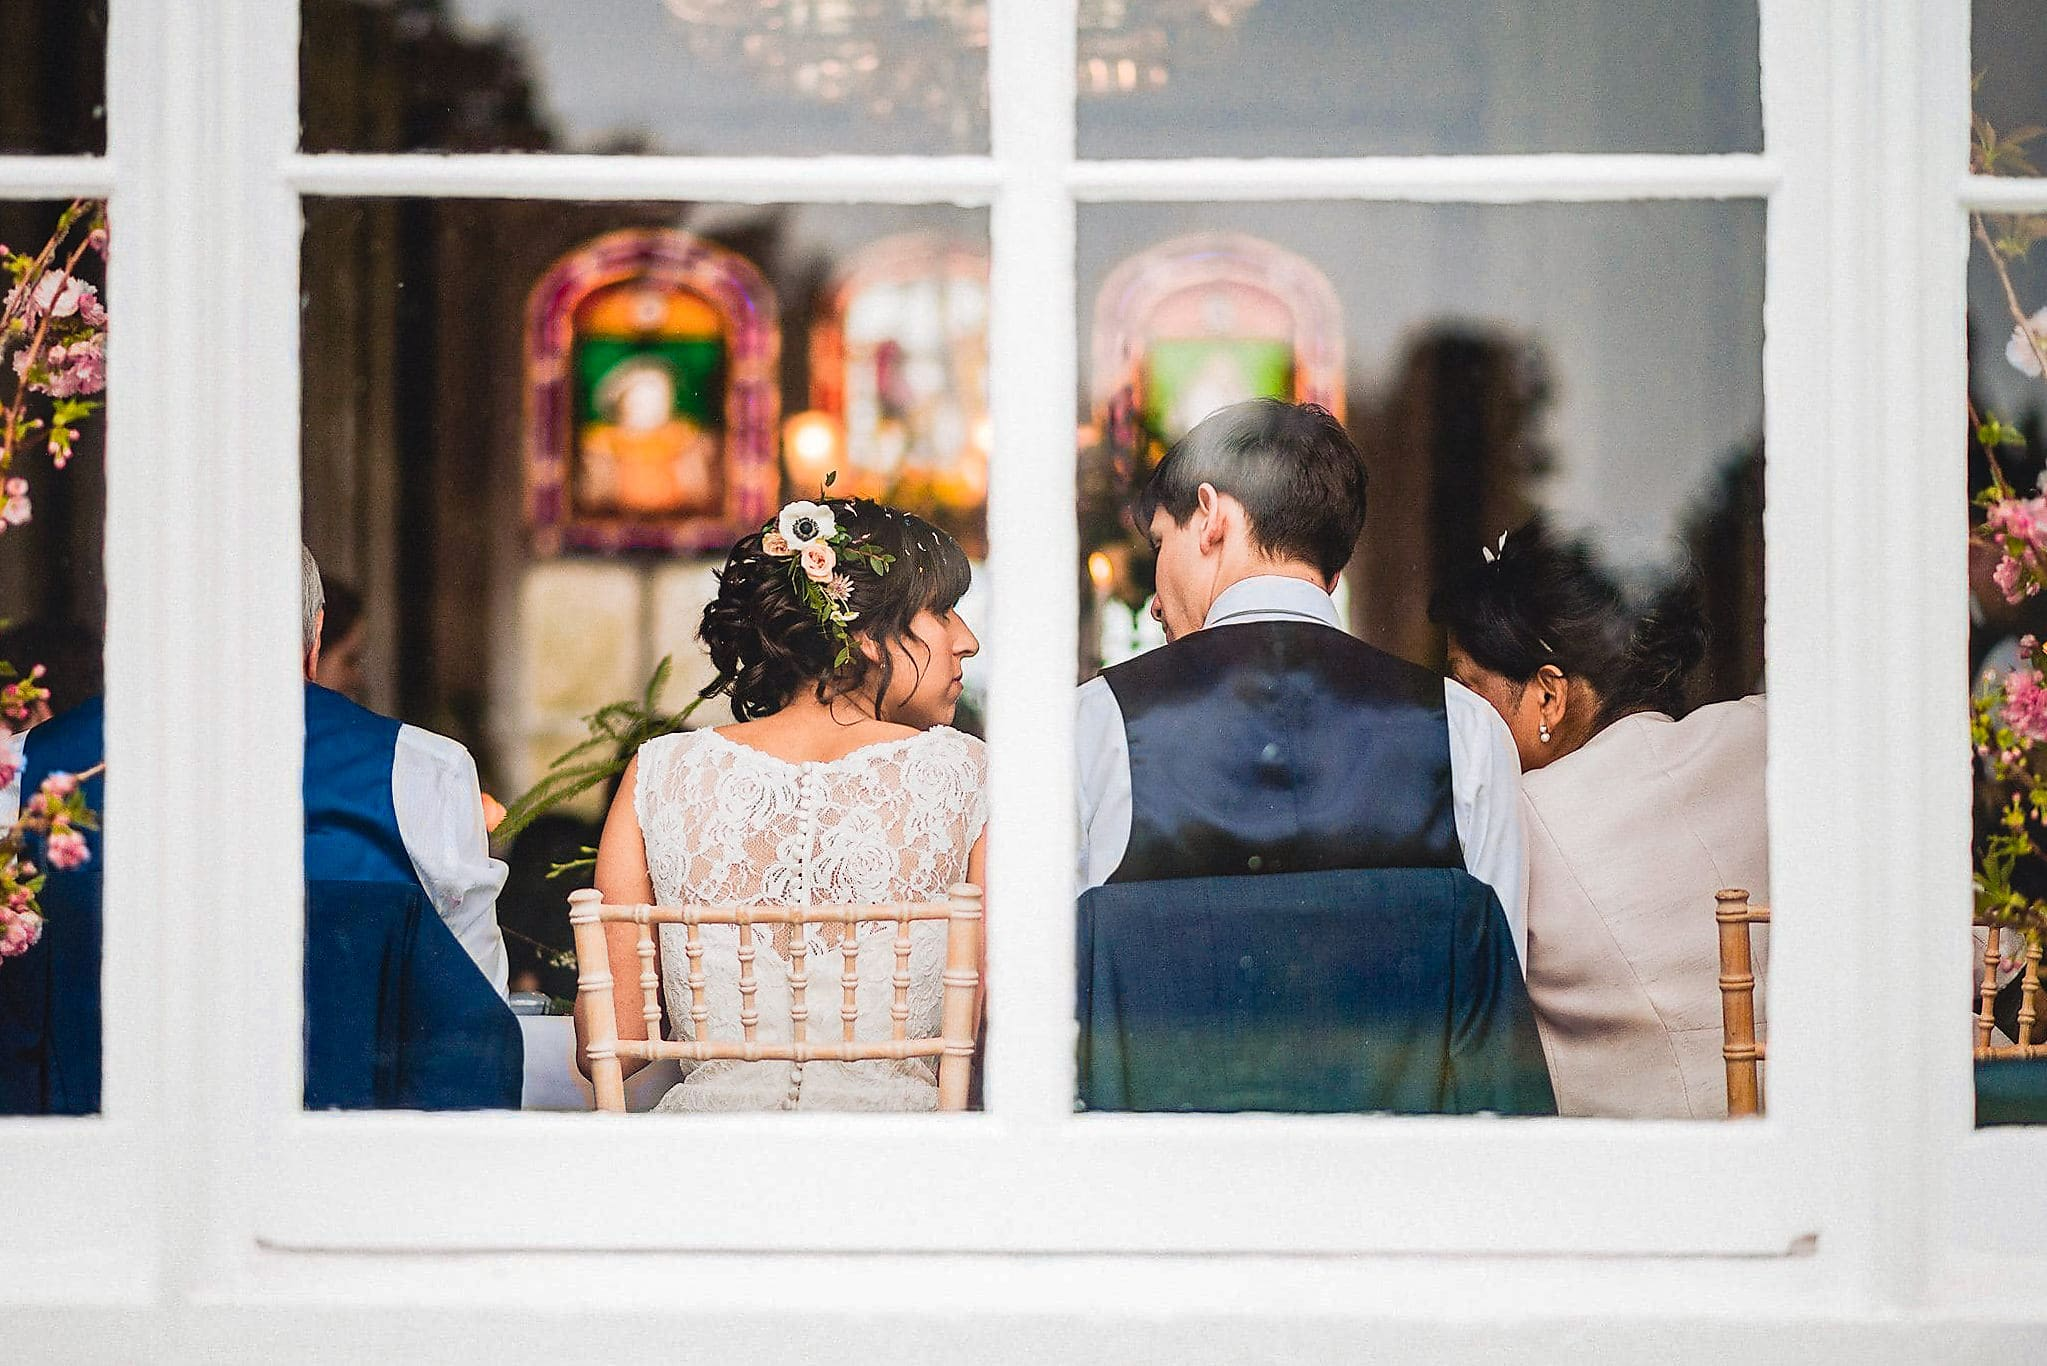 Bride and Groom seen sitting through a glass window